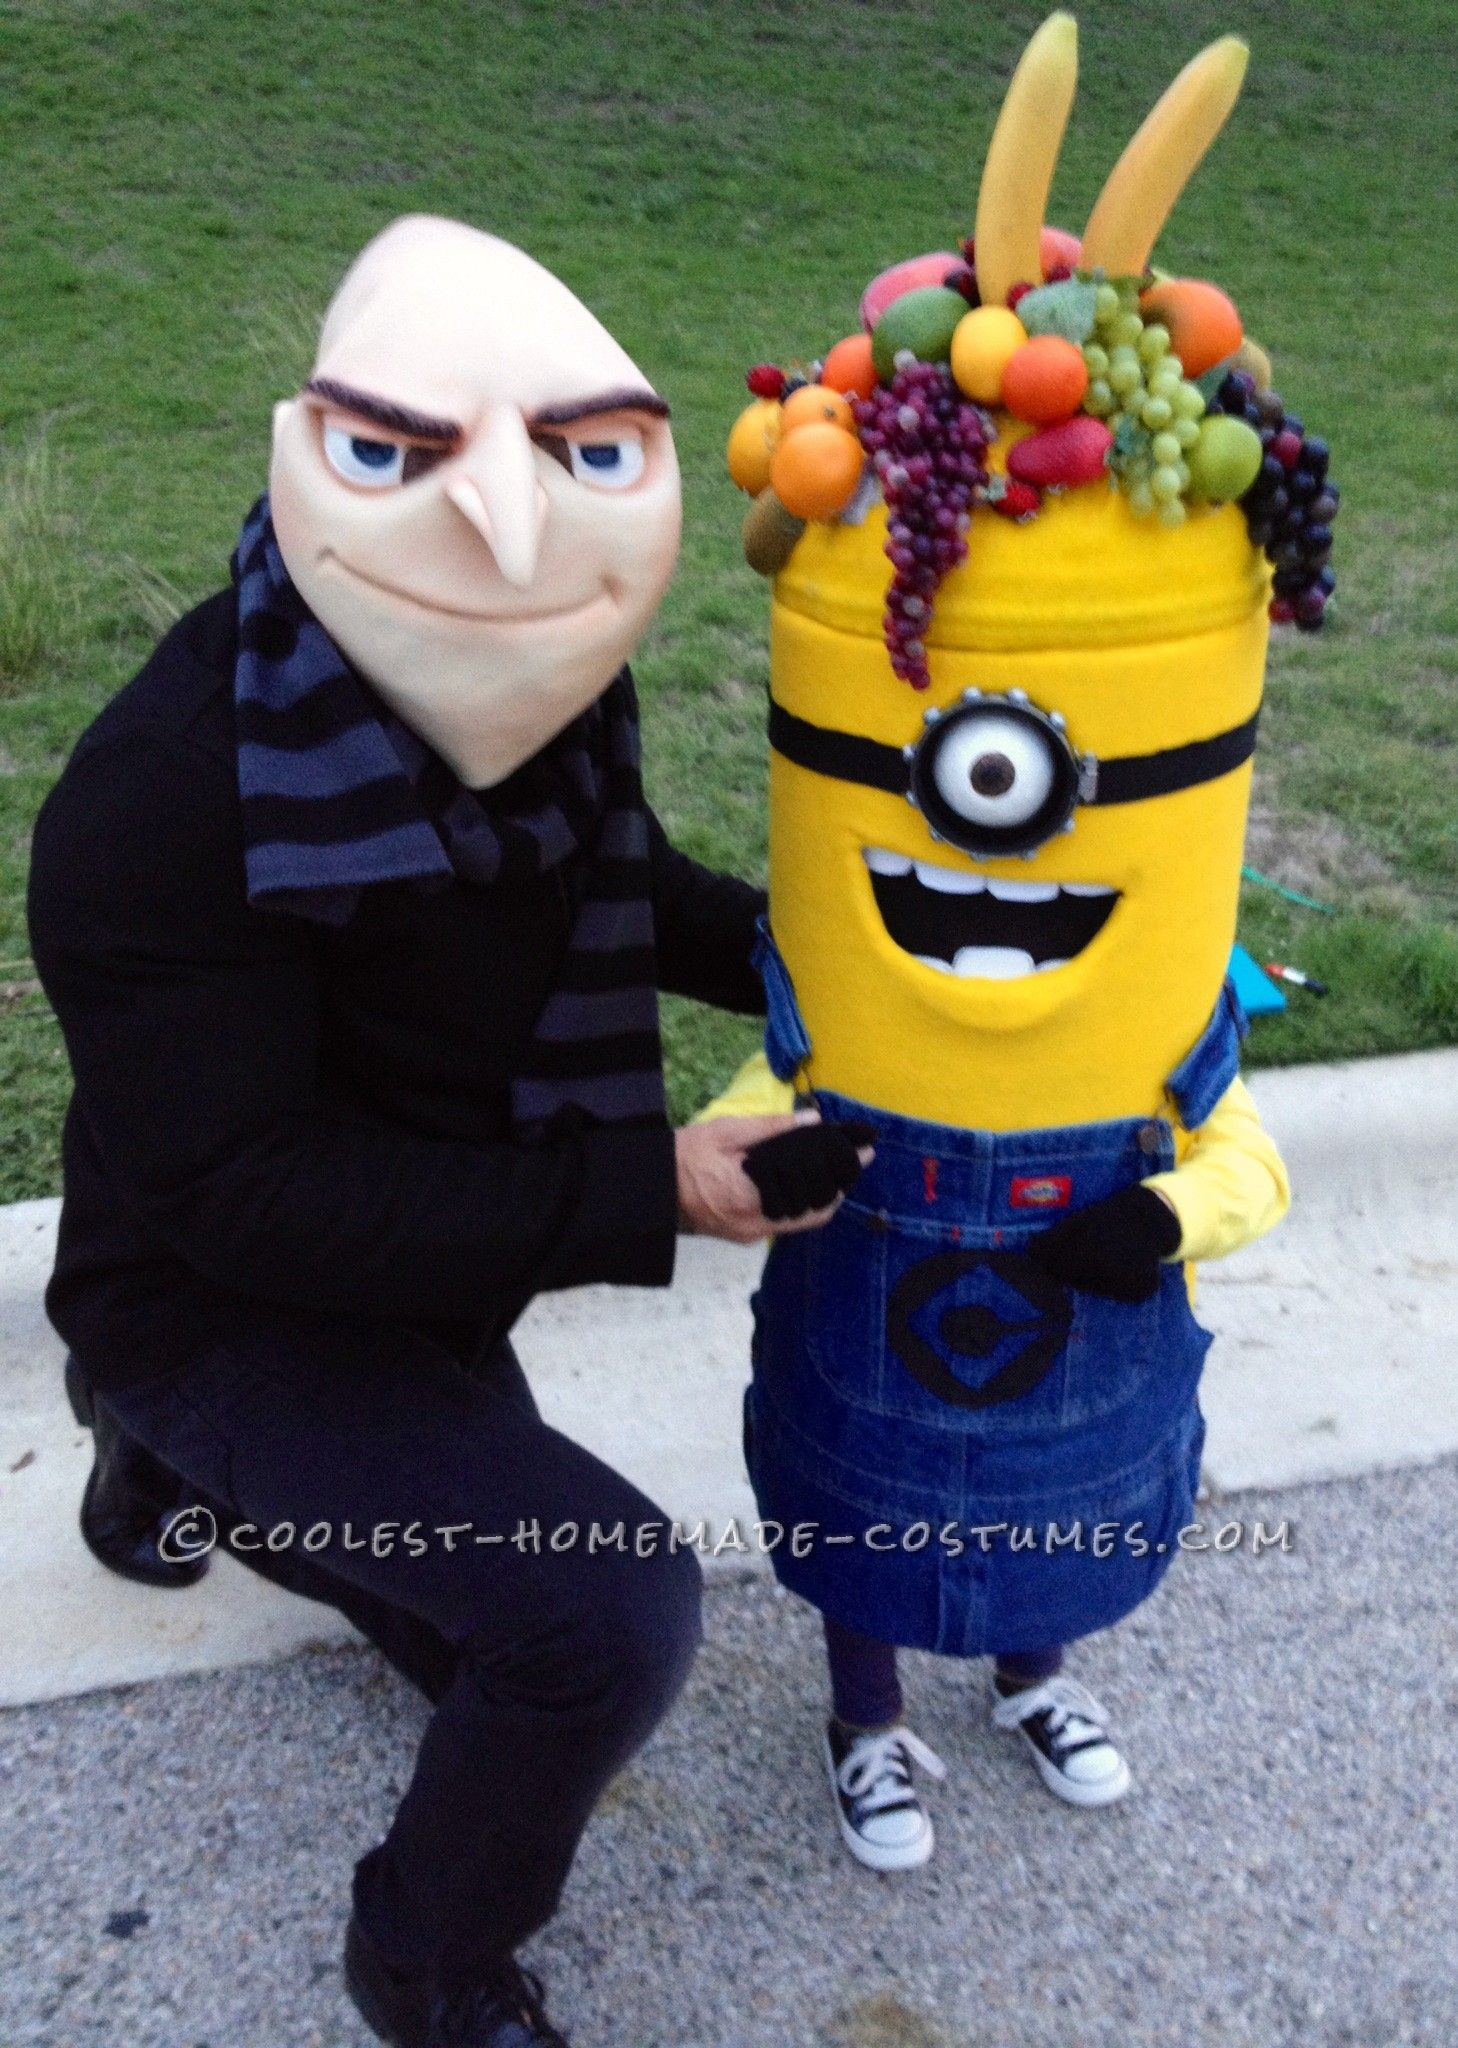 Coolest Carl the Minion Costume for a Toddler... This website is the Pinterest of costumes  sc 1 st  Pinterest & Coolest Carl the Minion Costume for a Toddler | Pinterest | Costumes ...